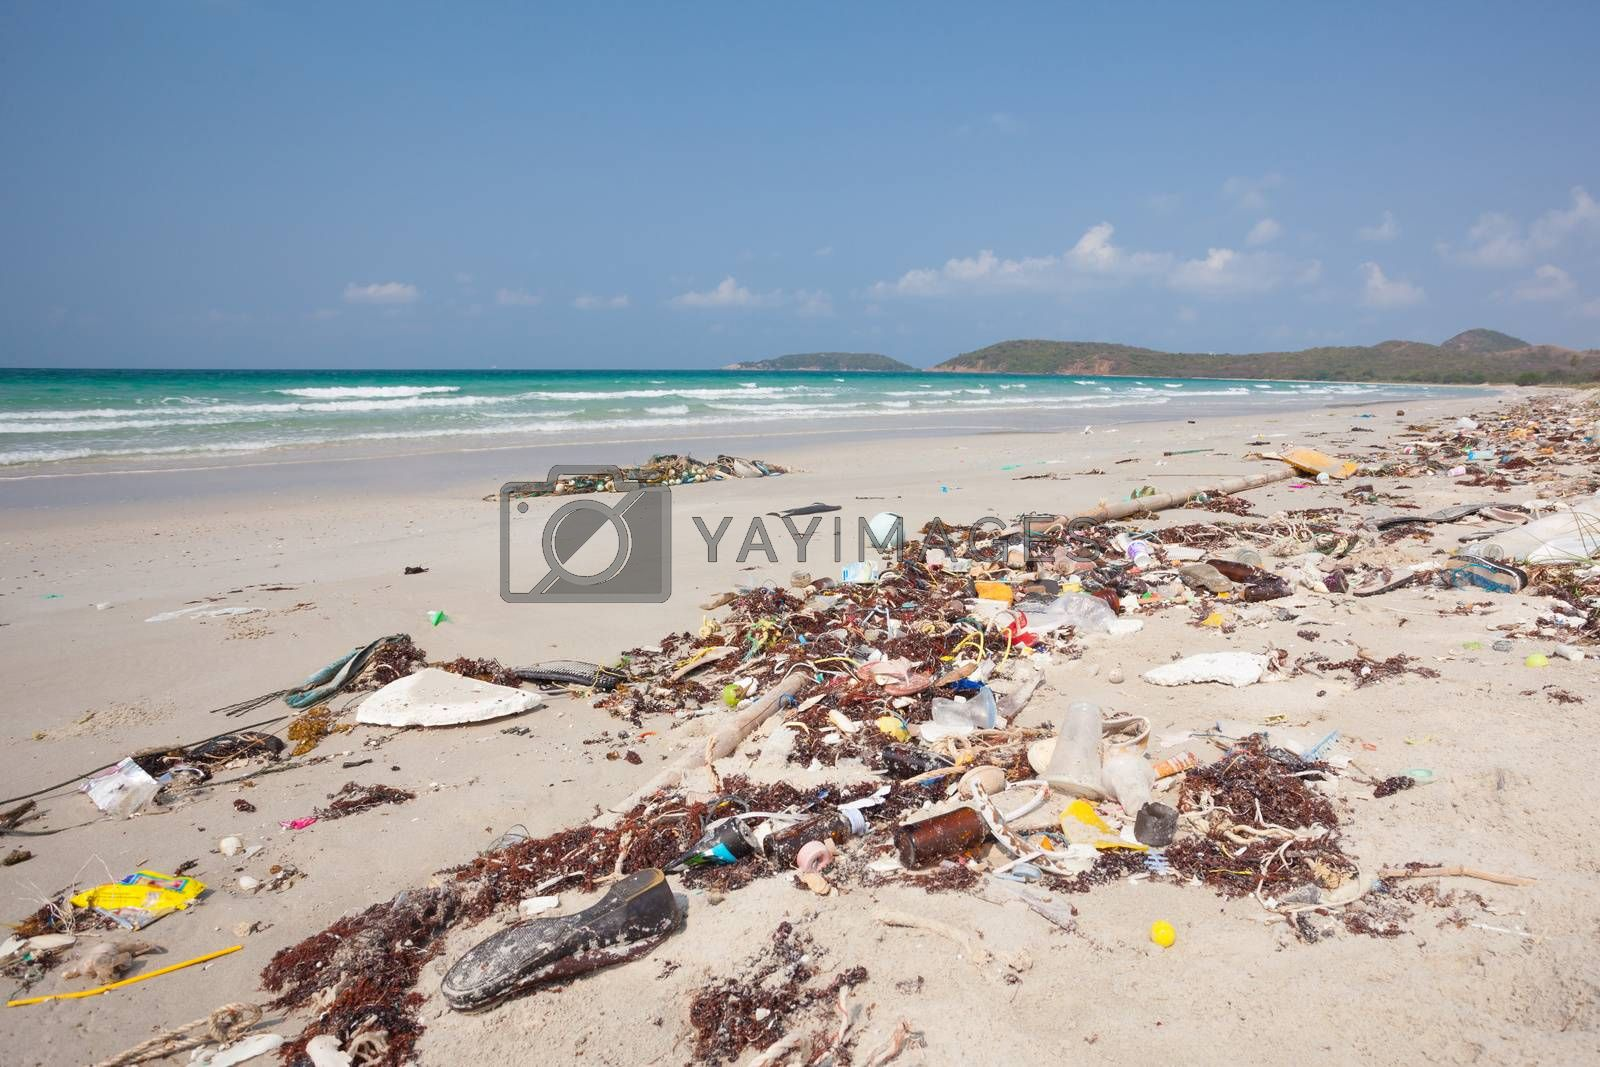 Lot of rubbish washed up on the shore on the beach